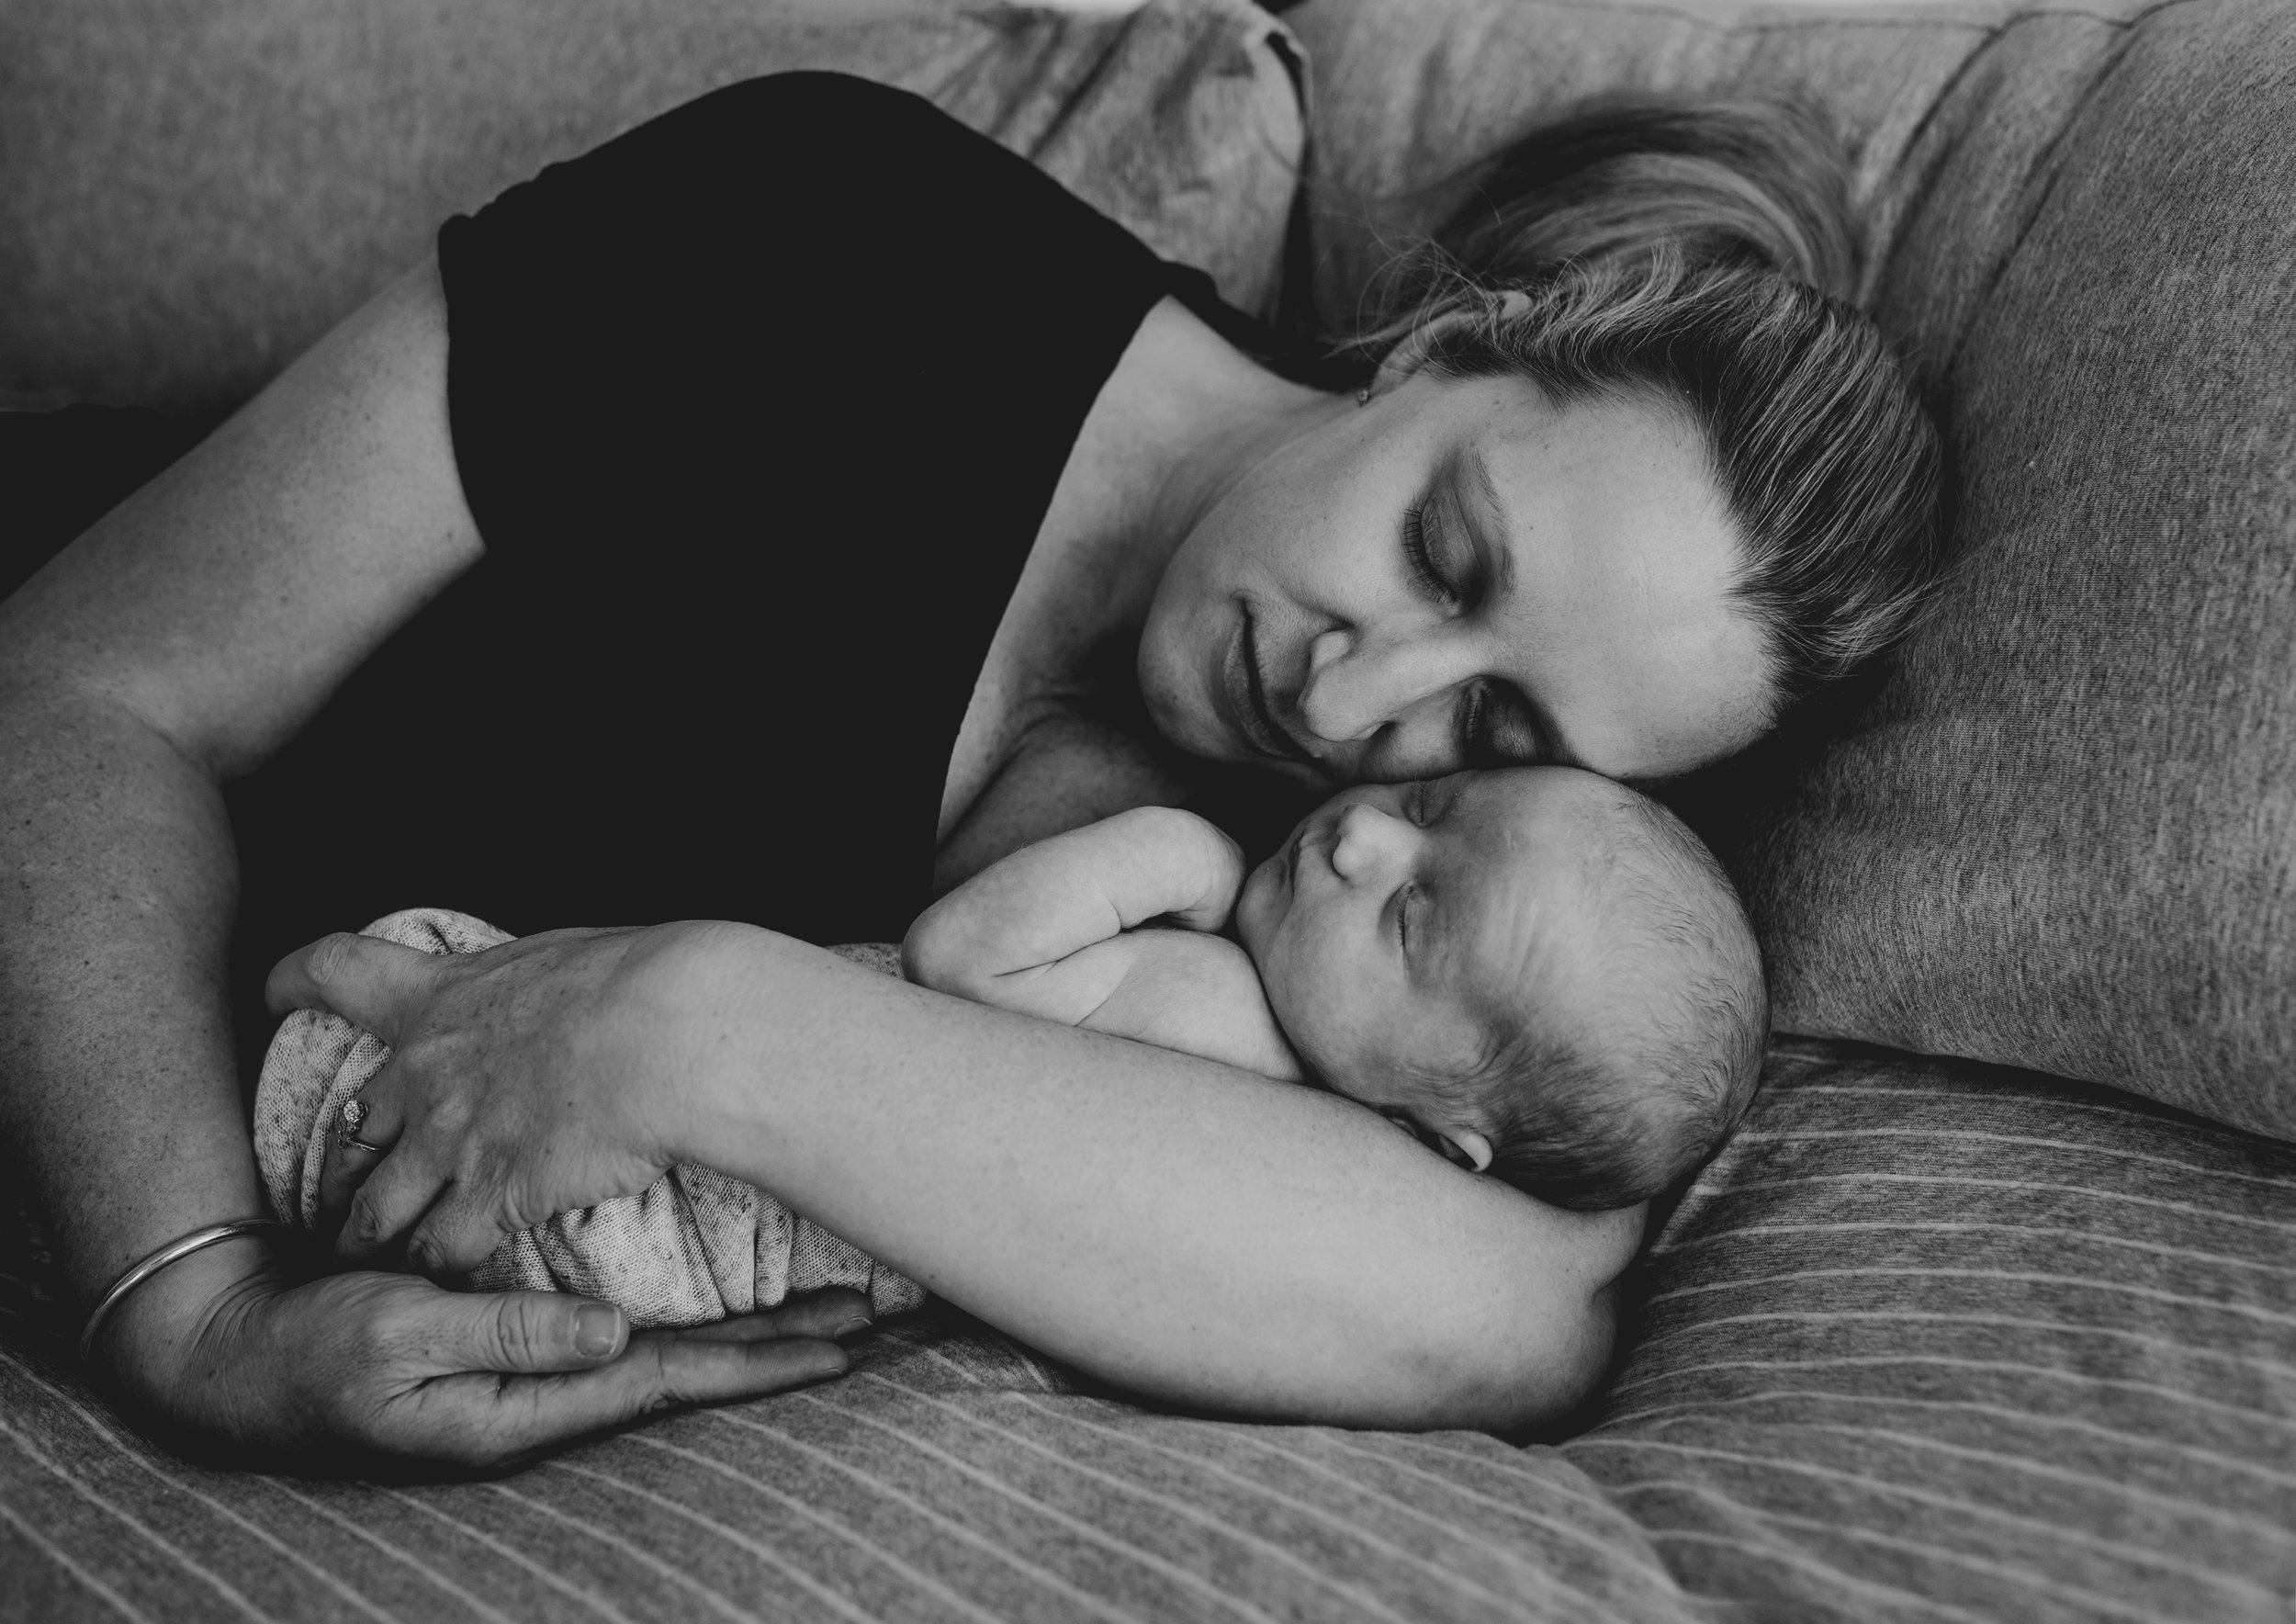 Sleeping mother and baby